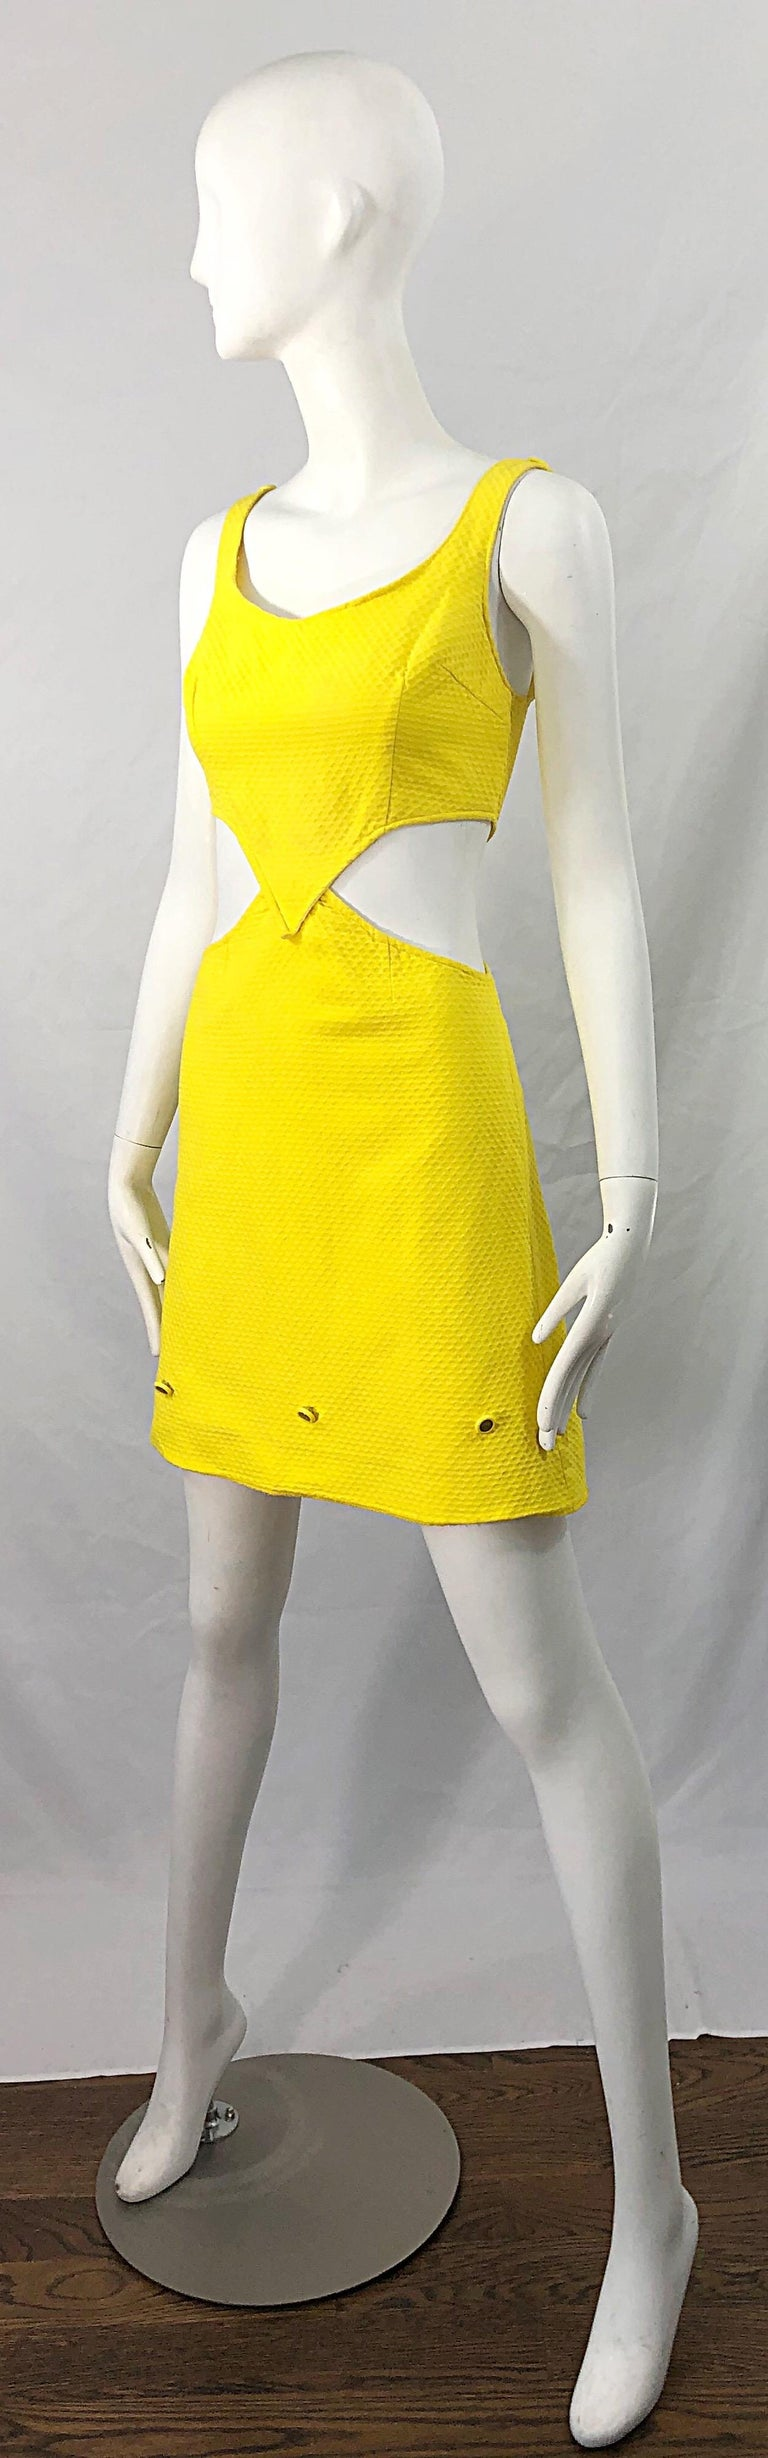 1960s Canary Yellow Cut - Out Honeycomb Cotton Vintage 60s A Line Dress For Sale 1